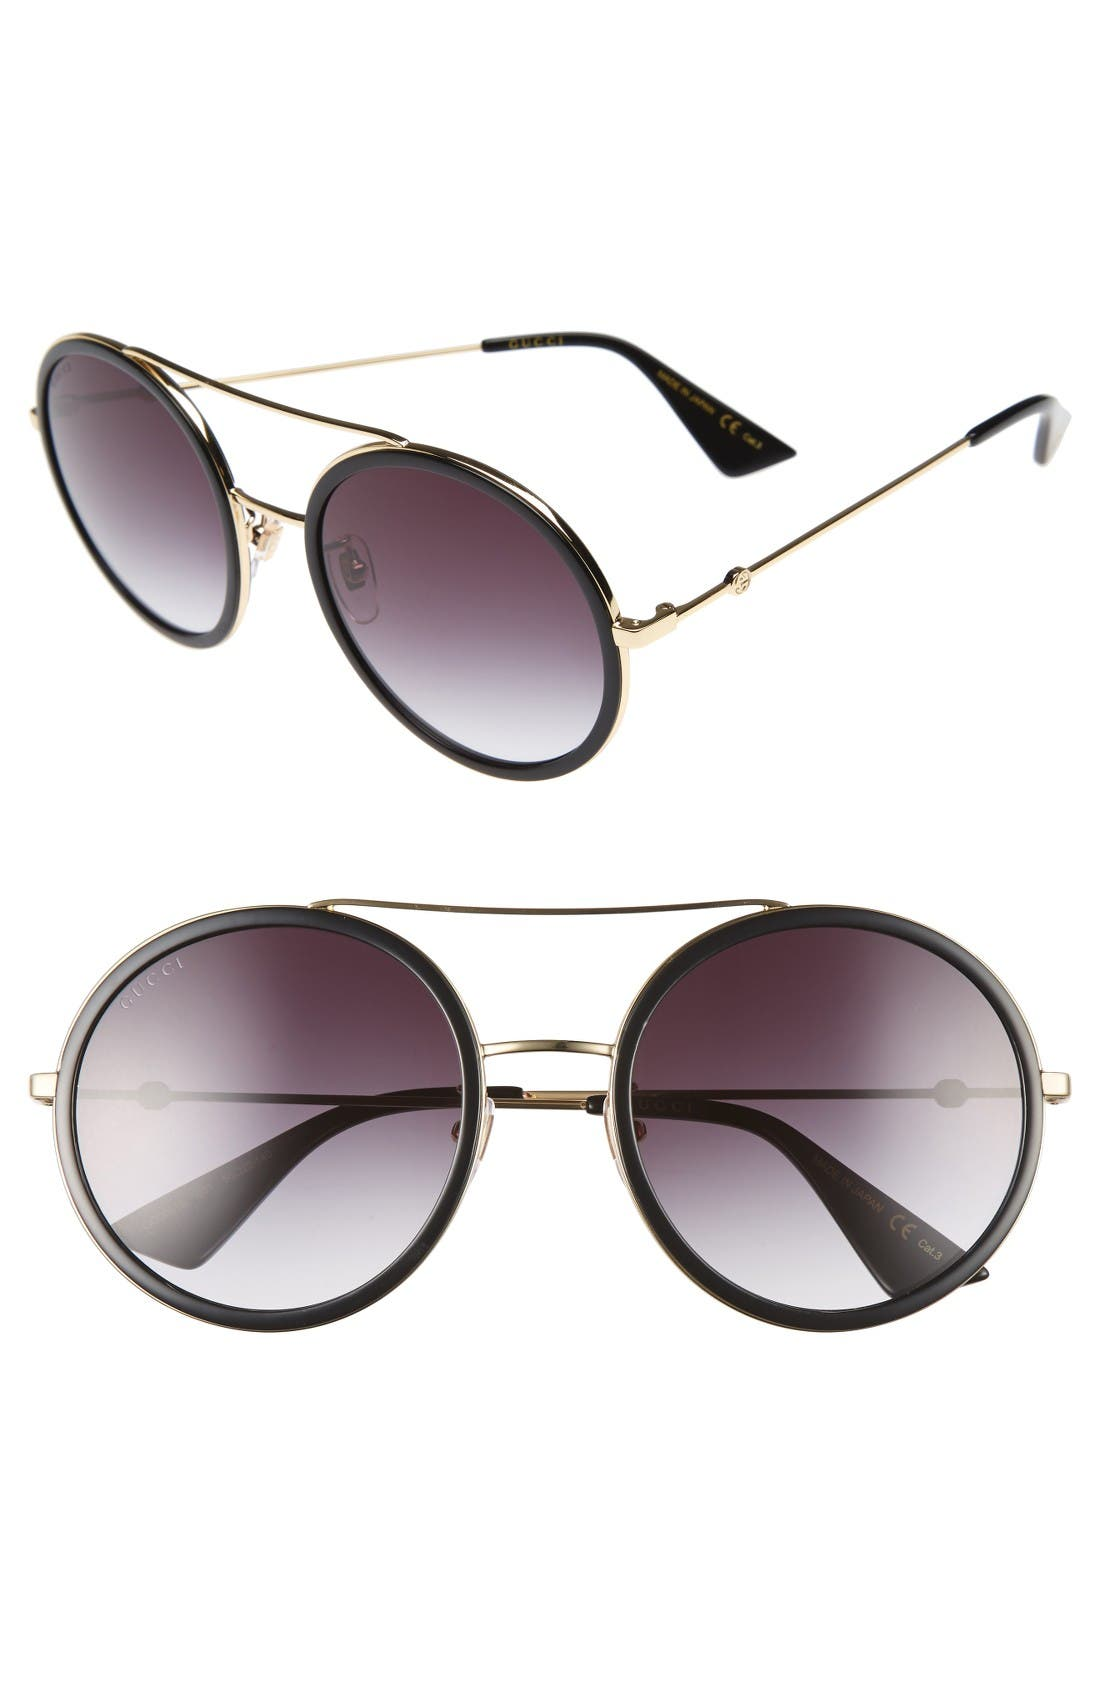 e0e535d979f Gucci Women s Sunglasses